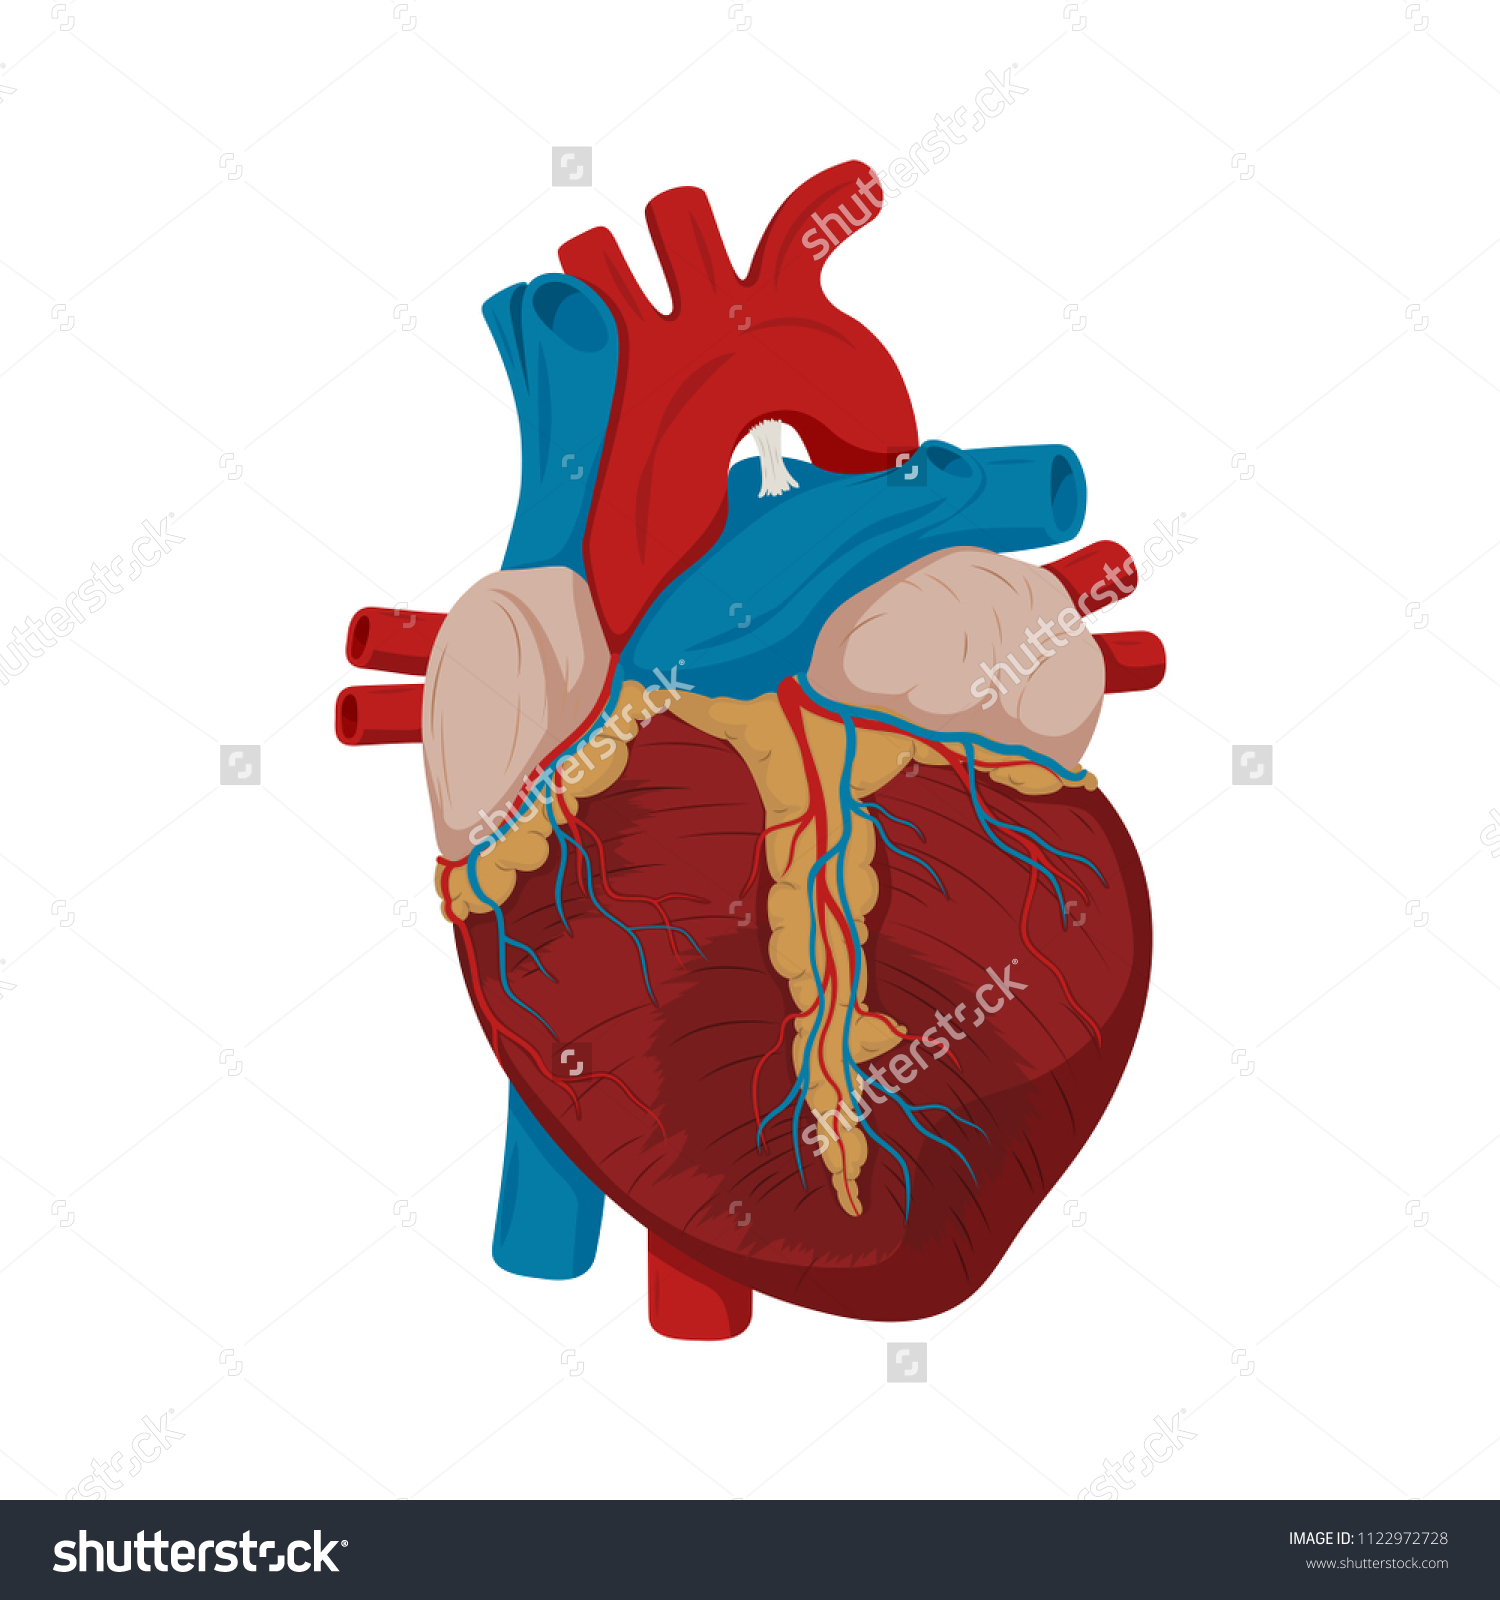 Ascending Aortic Aneurysm Damaged Heart Muscle Stock Photo (Photo ...